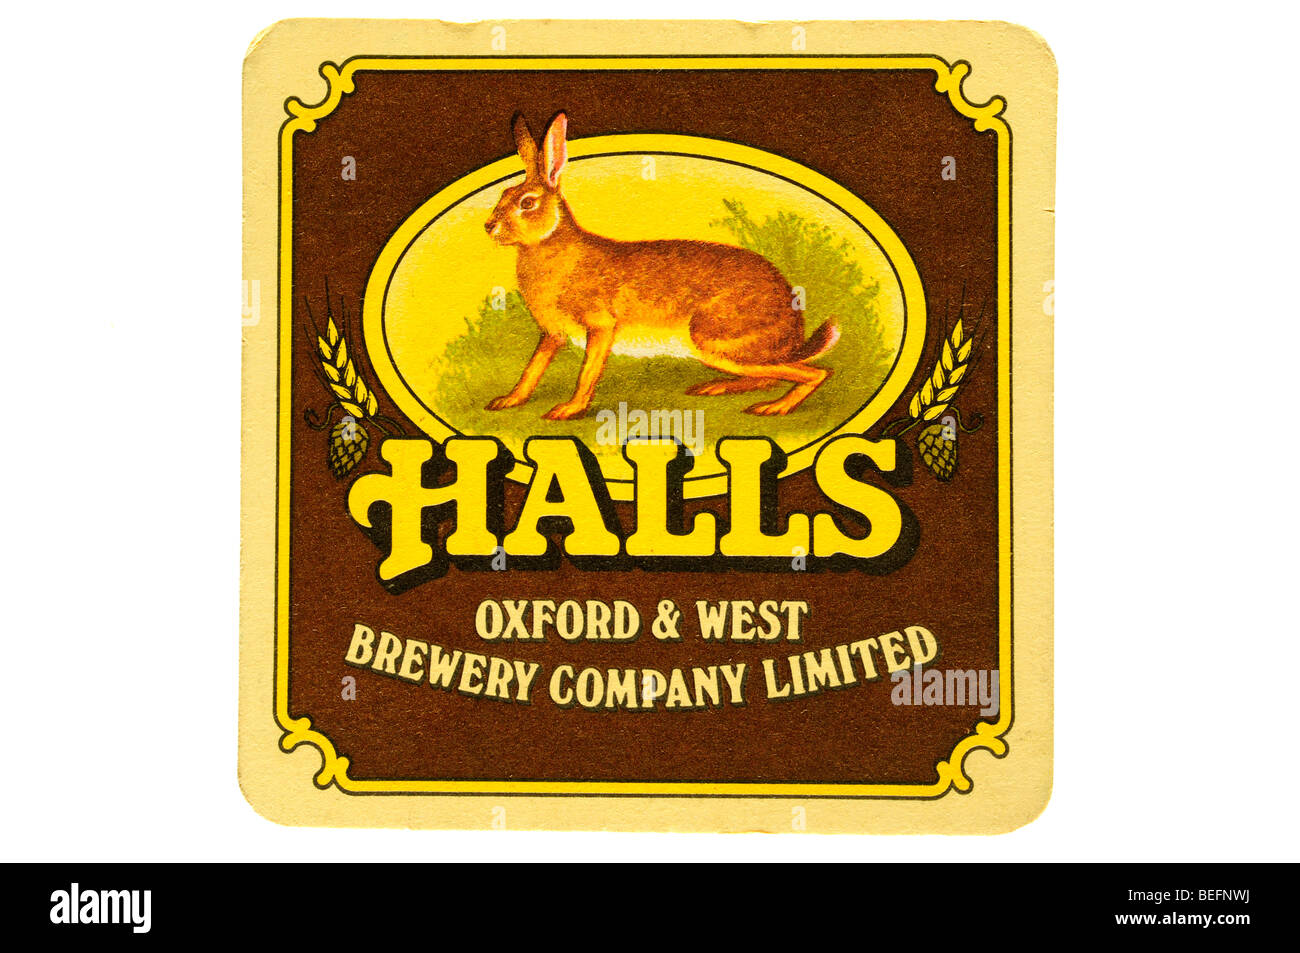 halls oxford and west brewery company limited - Stock Image